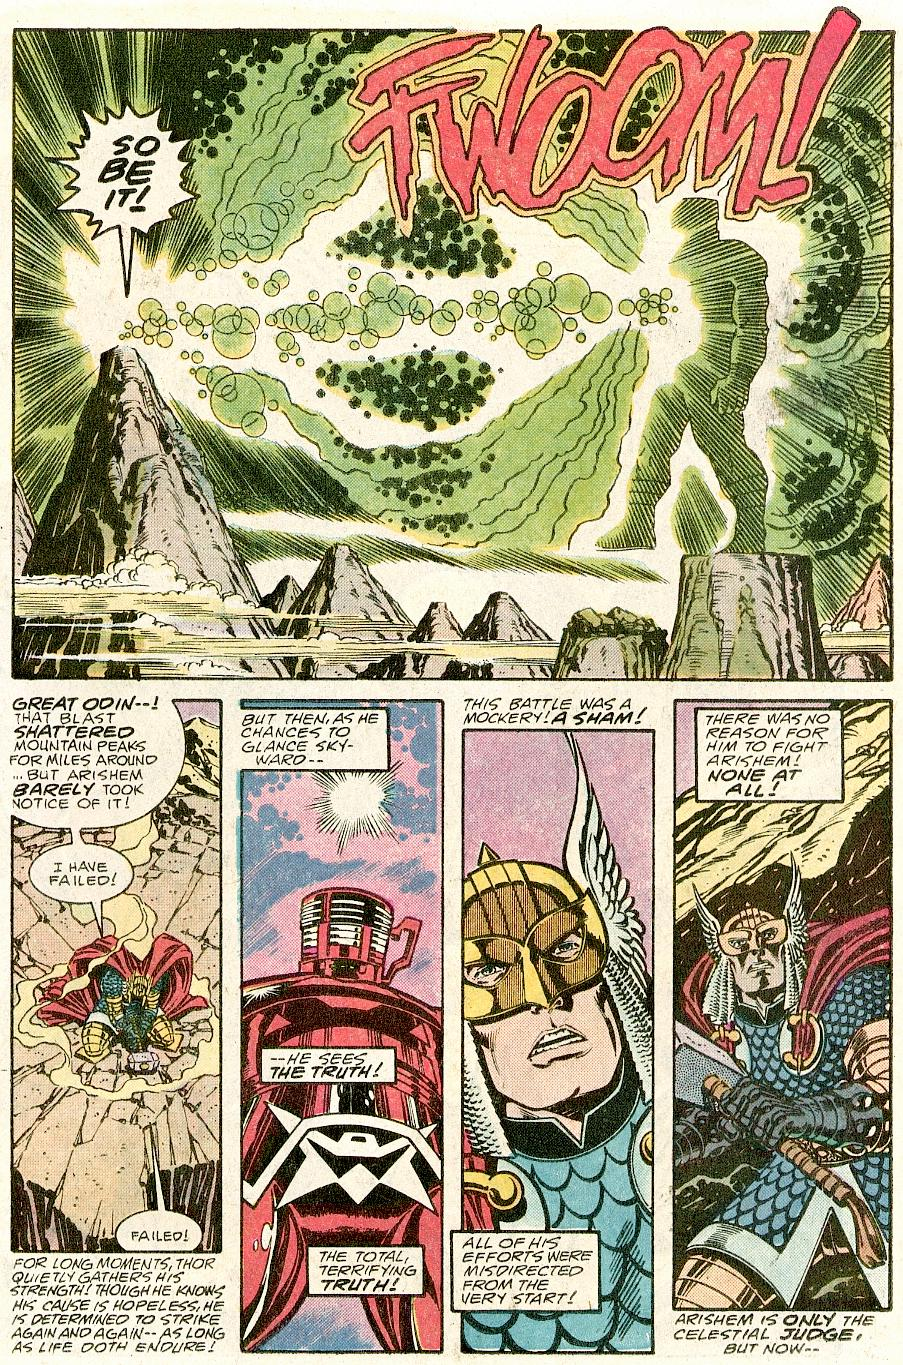 The Mighty Thor Vs The Celestial Arishem The Judge Part